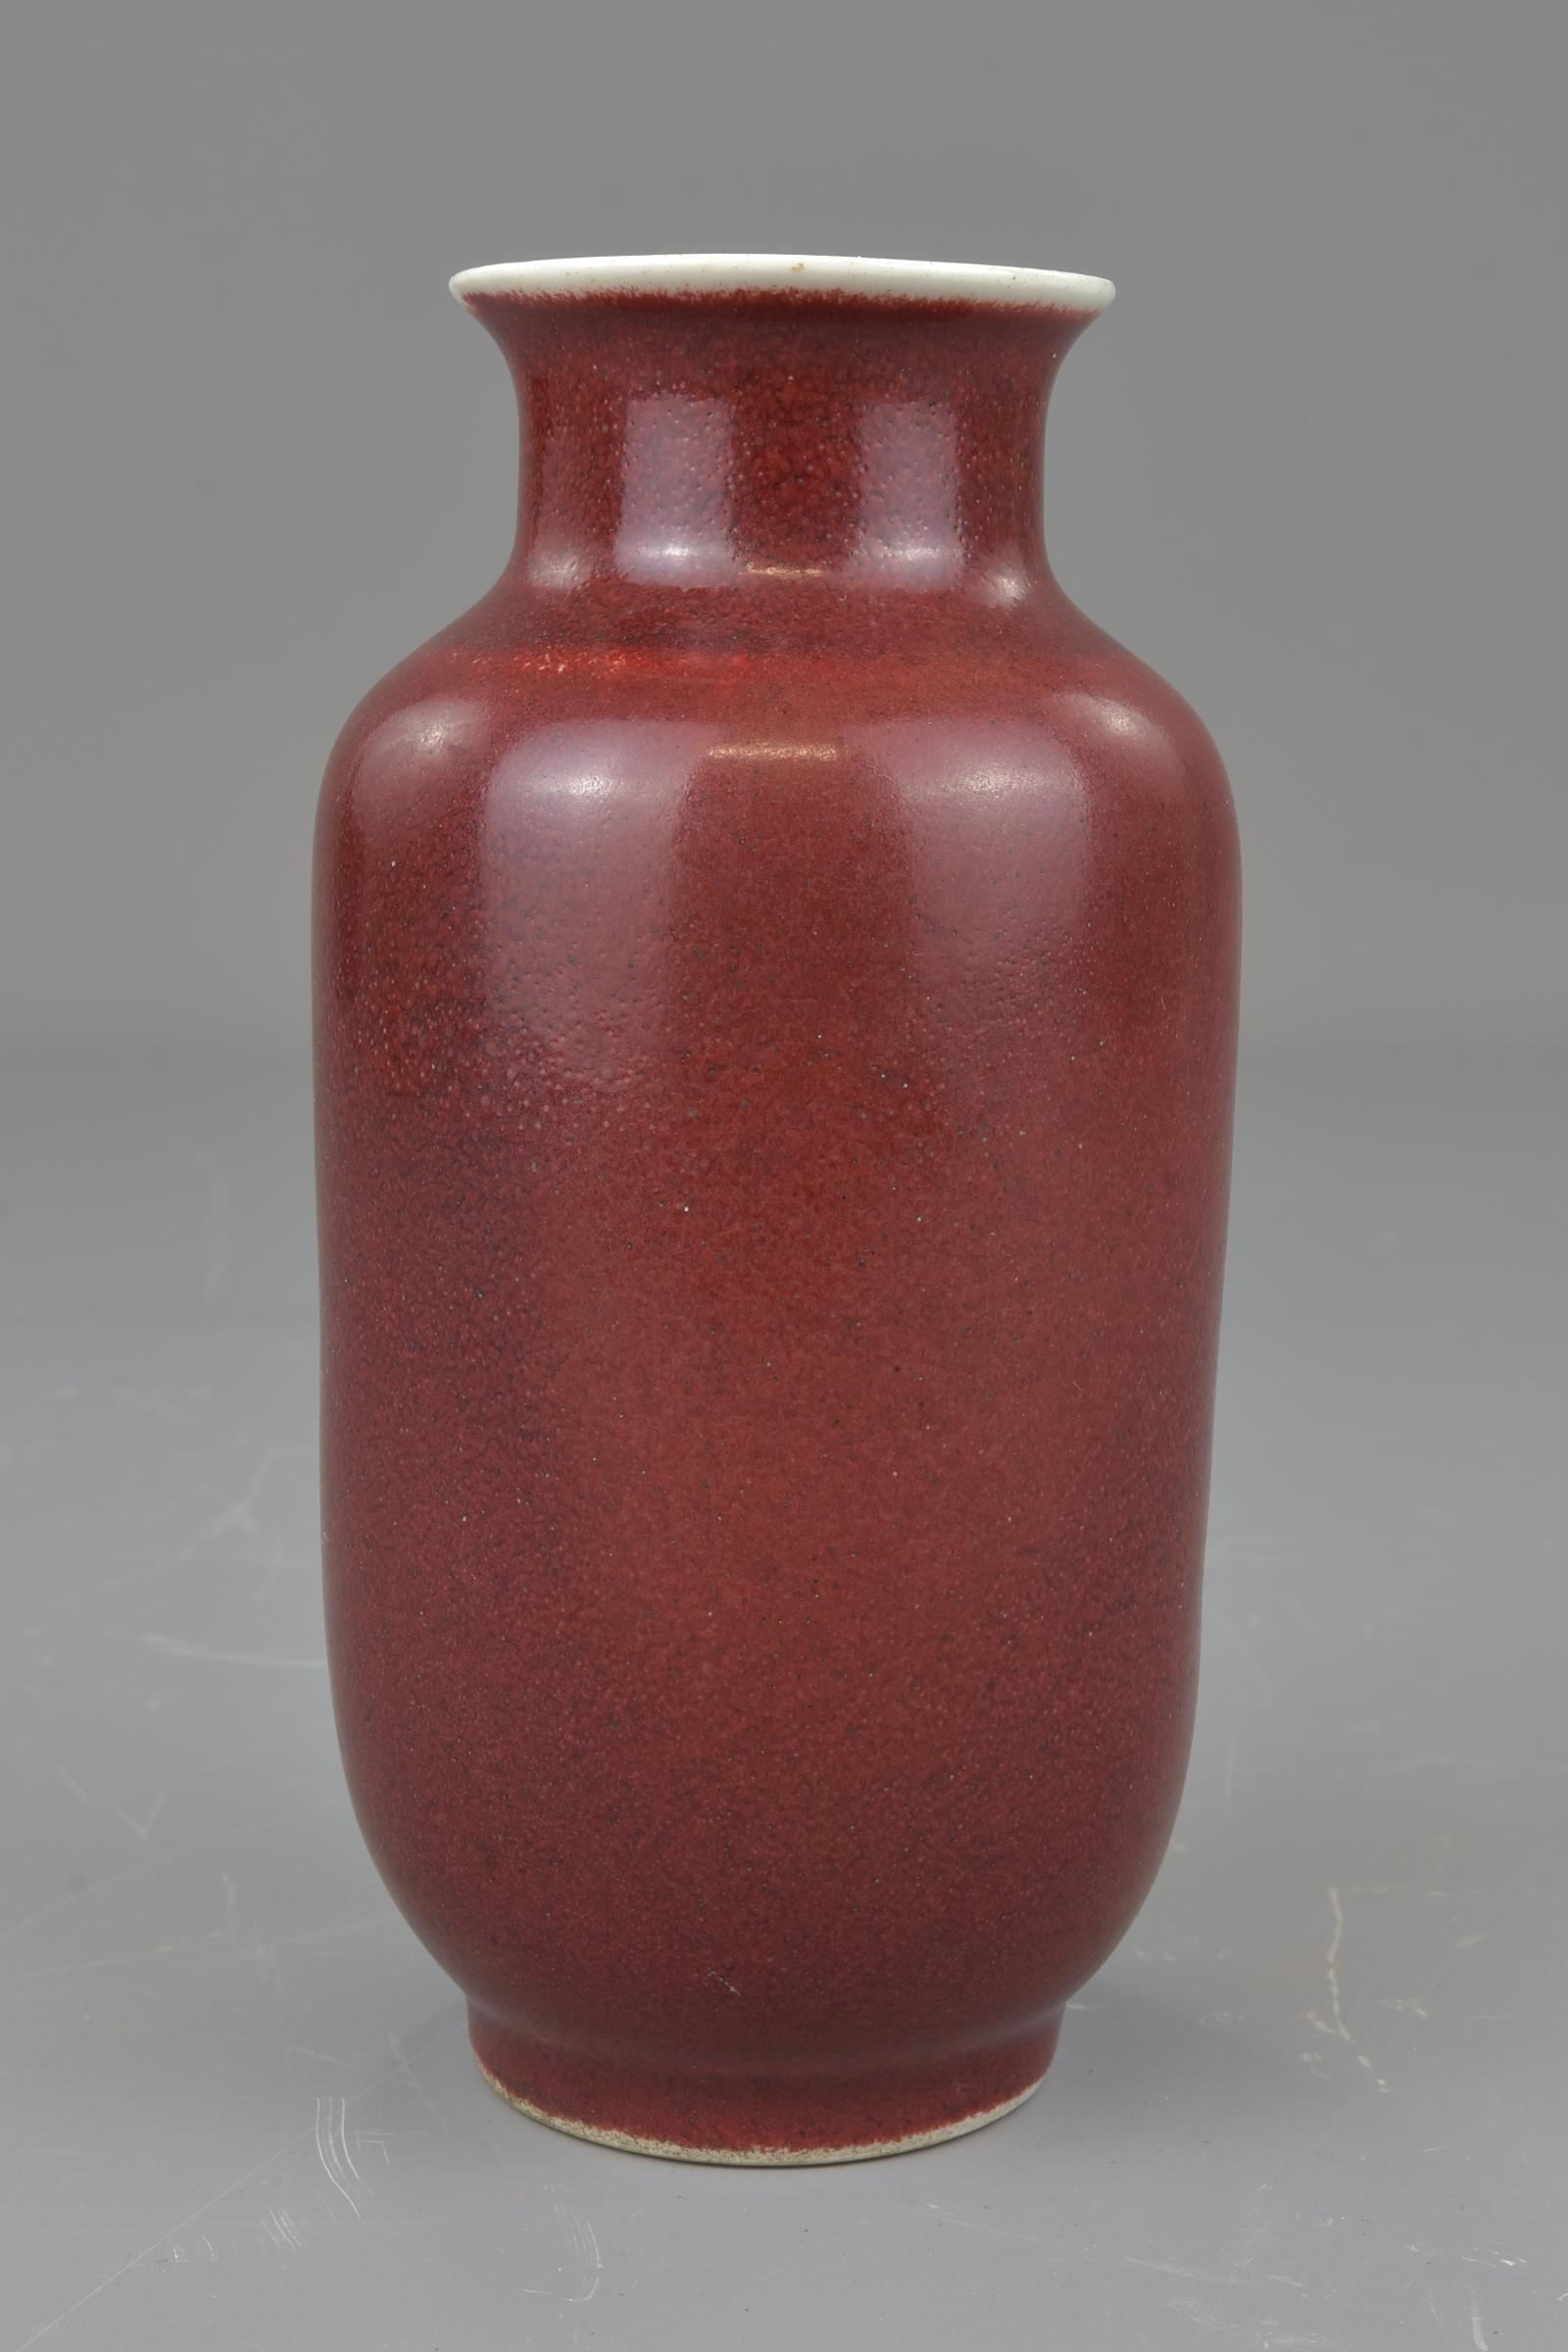 Lot 40 - A Chinese 19th century red glazed porcelain vase. 16cm height